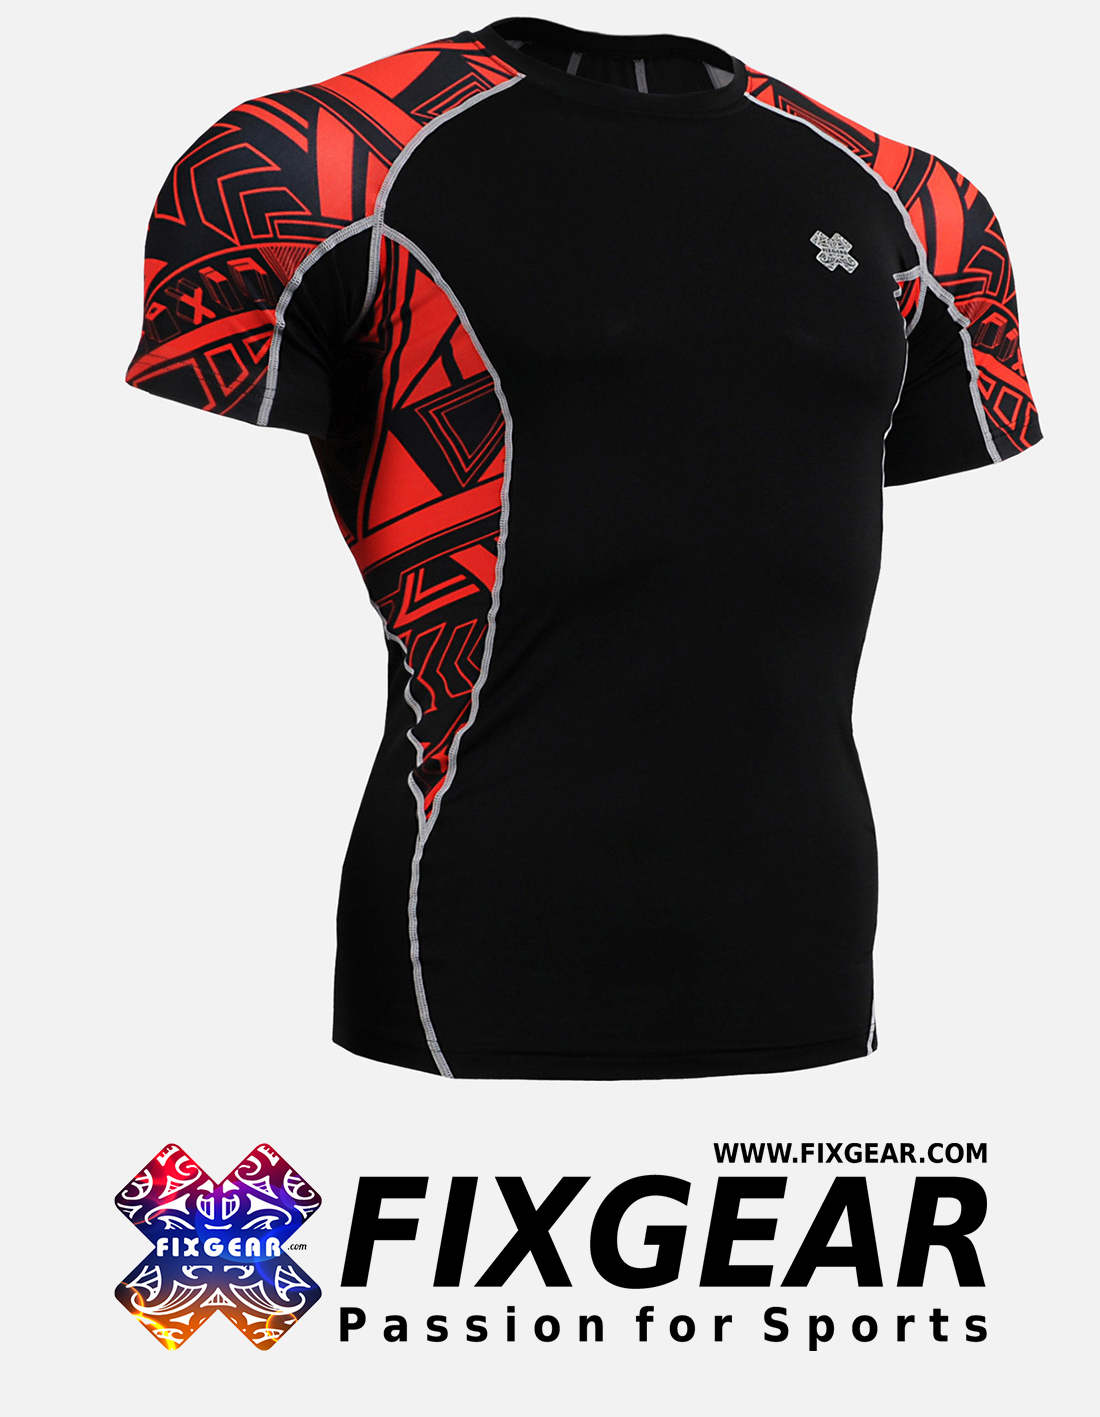 FIXGEAR C2S-B2 Compression Base Layer Shirt Short Sleeve